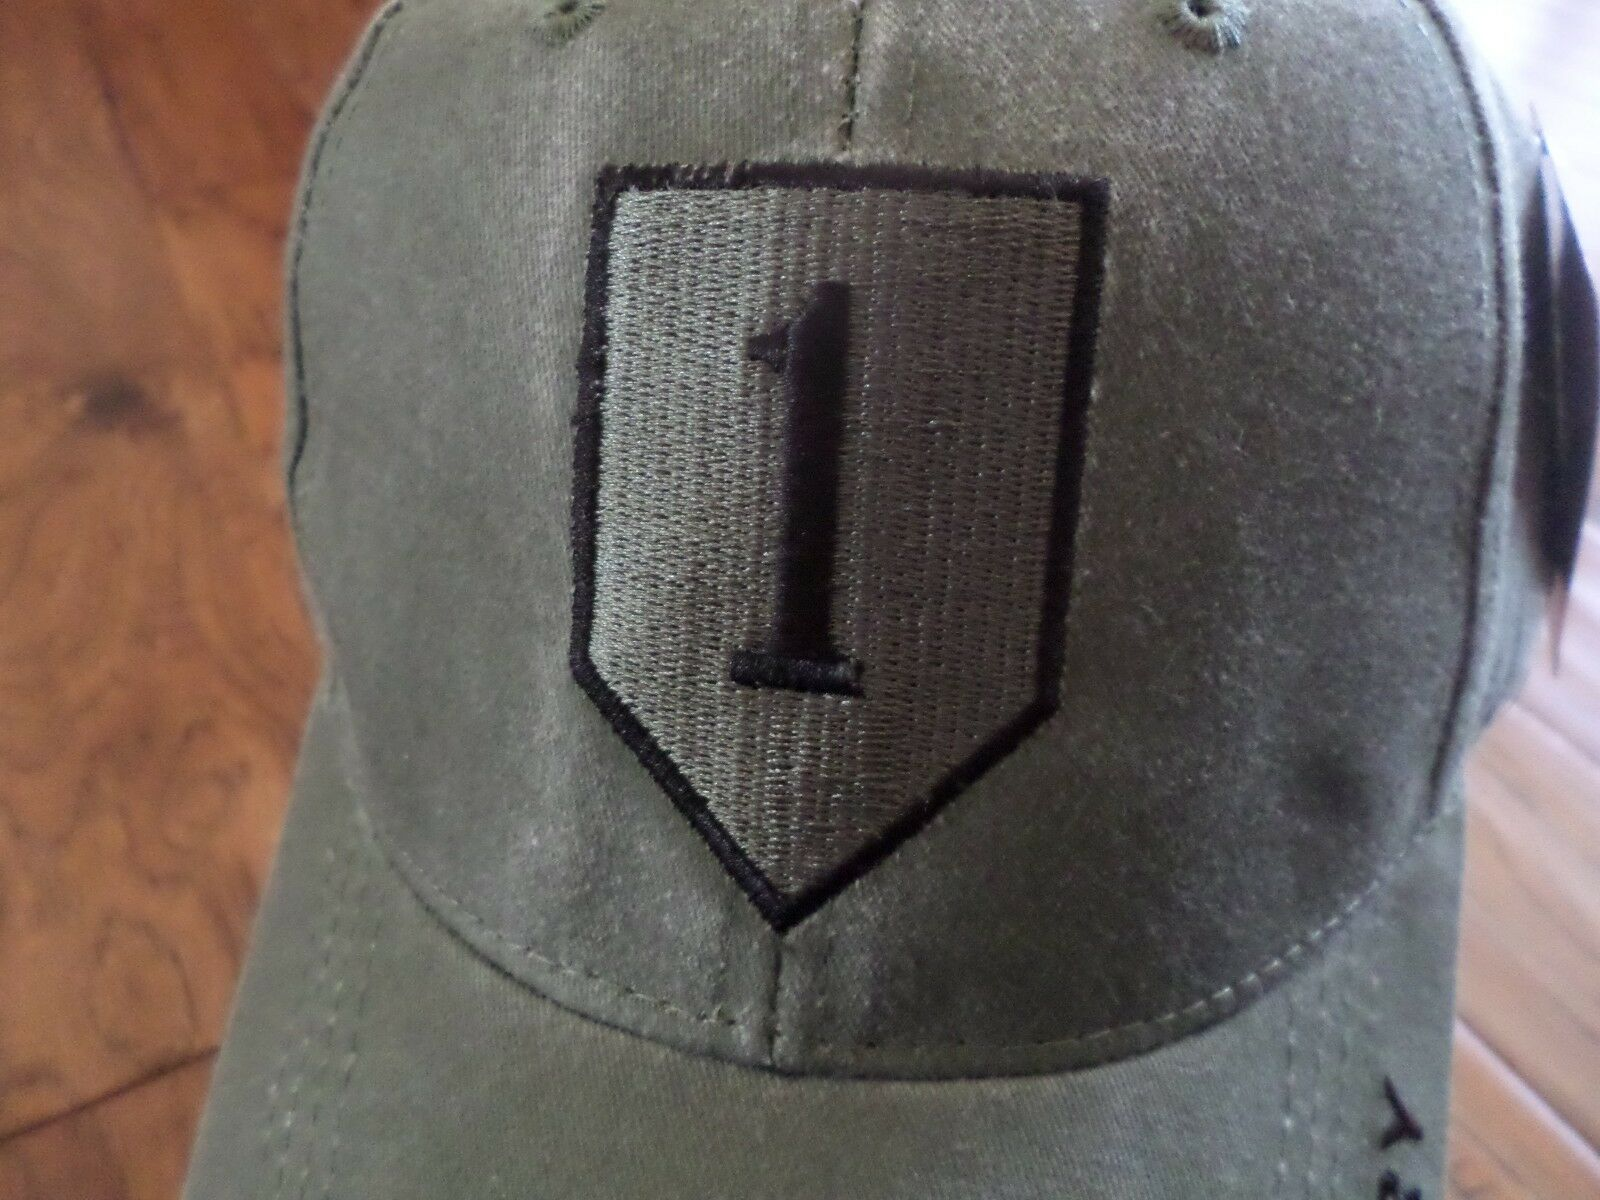 U.S MILITARY ARMY INFANTRY 1st INFANTRY ARMY DIVISION HAT STONEWASHED CAP bf1253